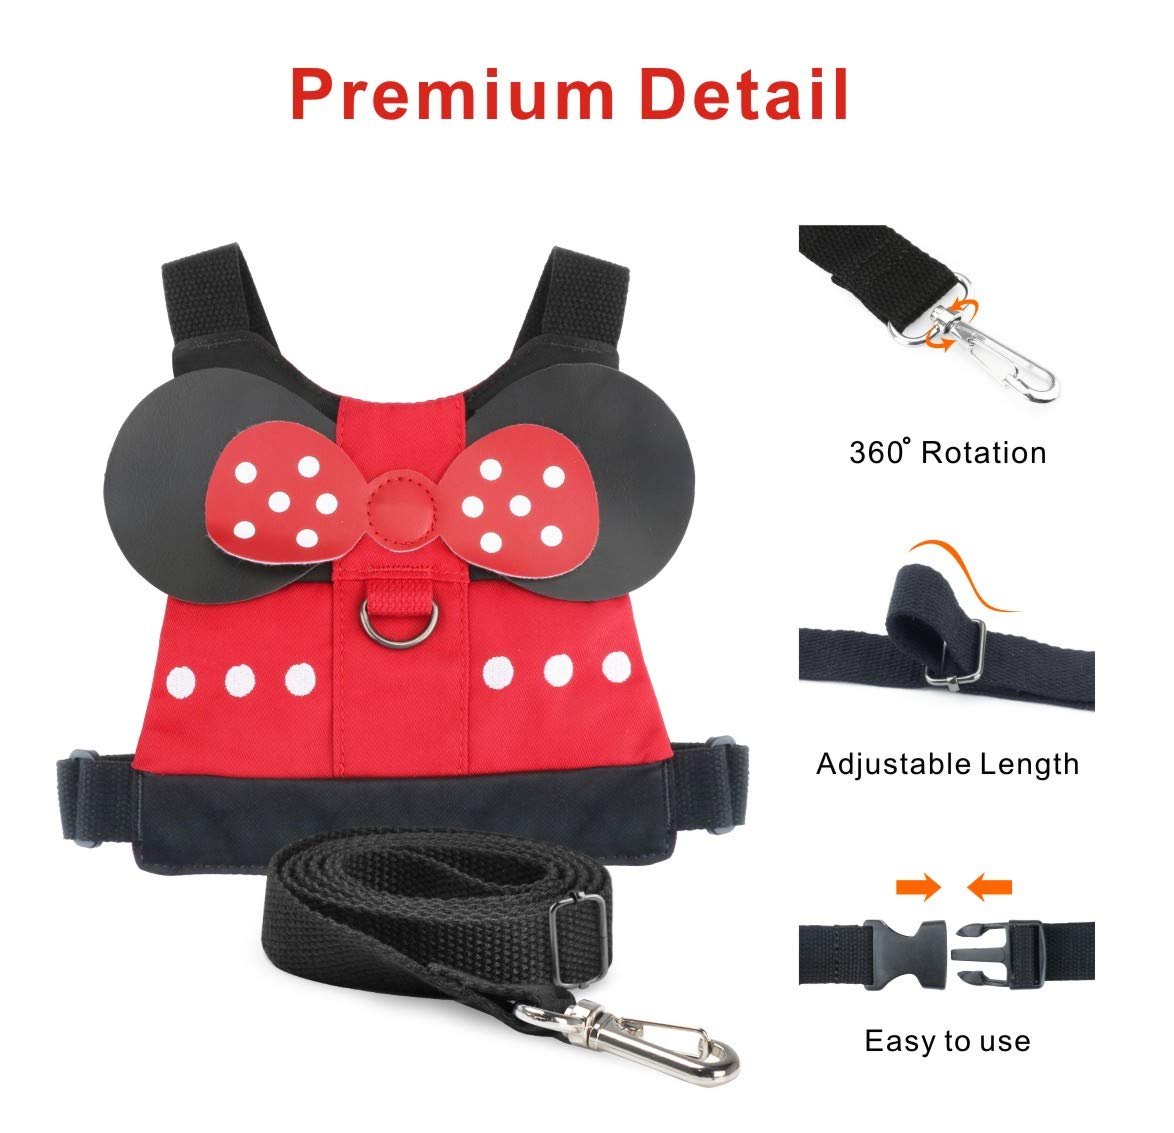 Elephant Blue Mall or Zoo Idefair Kids Harness Kid Leash Anti Lost Belt Harness Safety Walking Leash for Age 1-5 Years Old Boys /& Girls to Disneyland